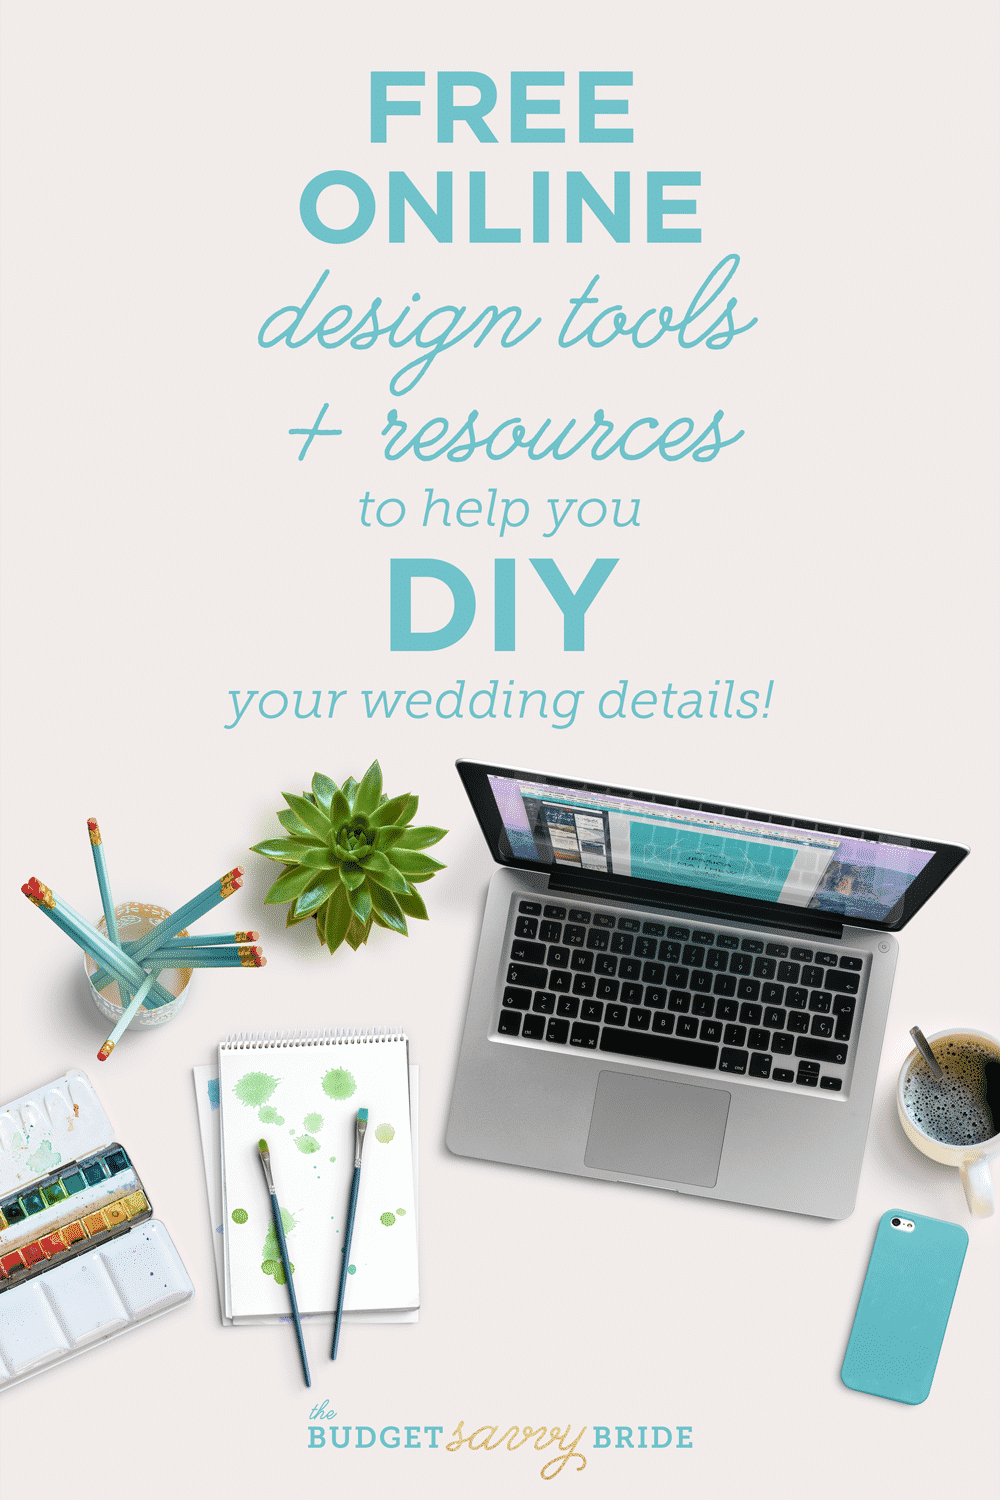 Check out these free design tools to help you diy your wedding details!